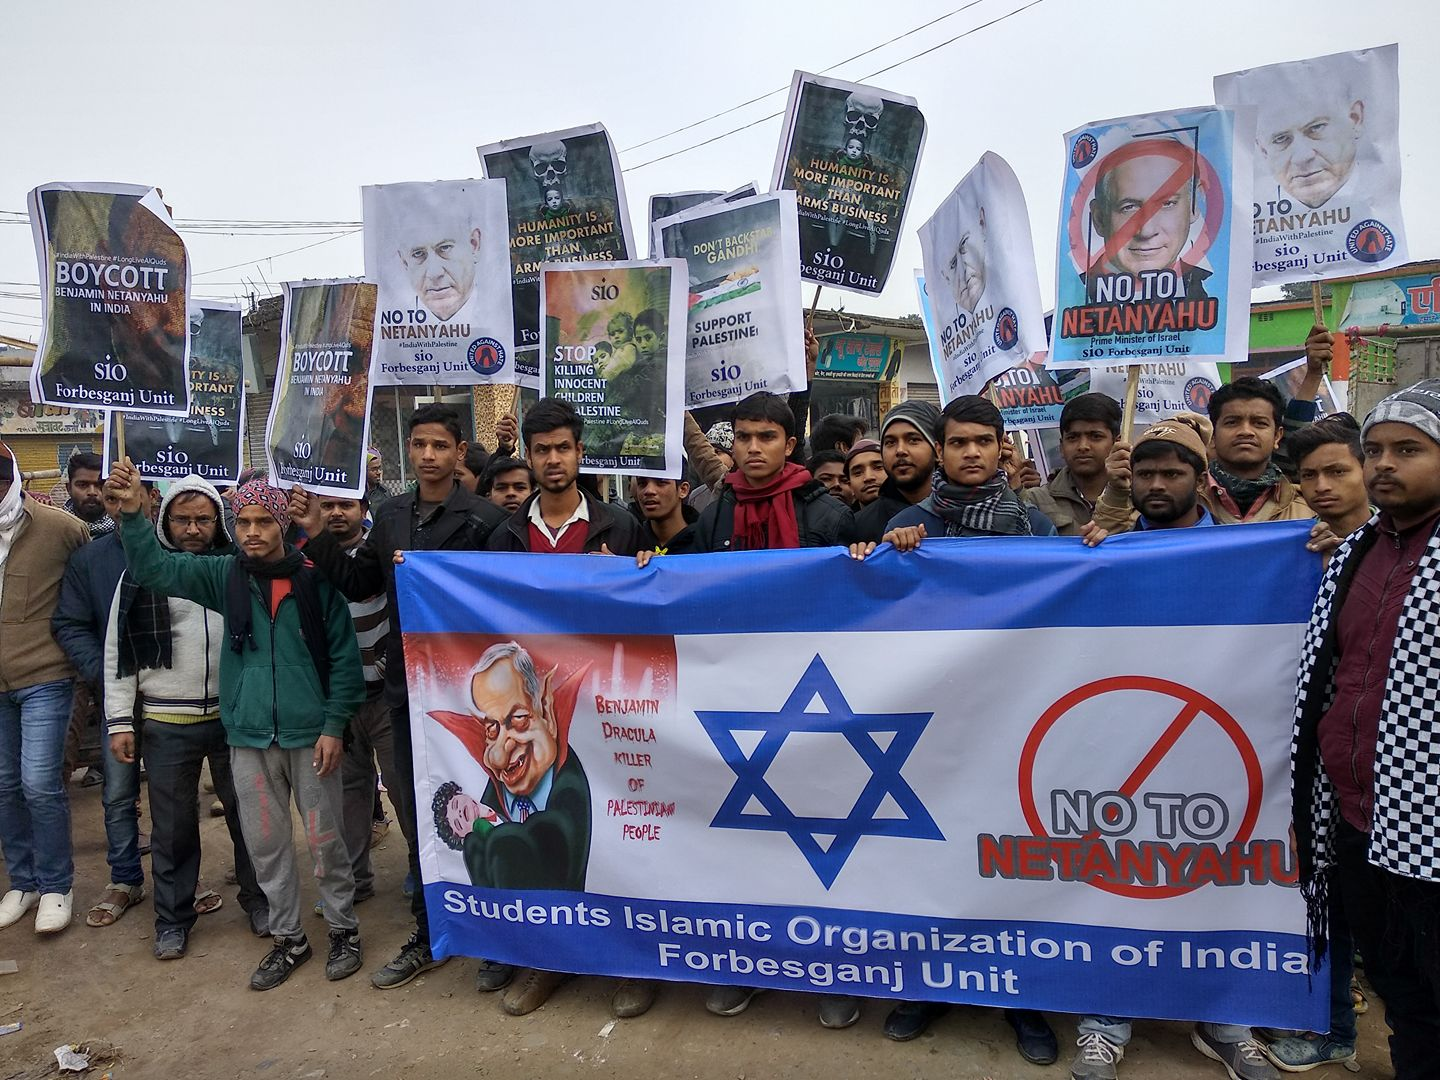 india-protests-netanyahu